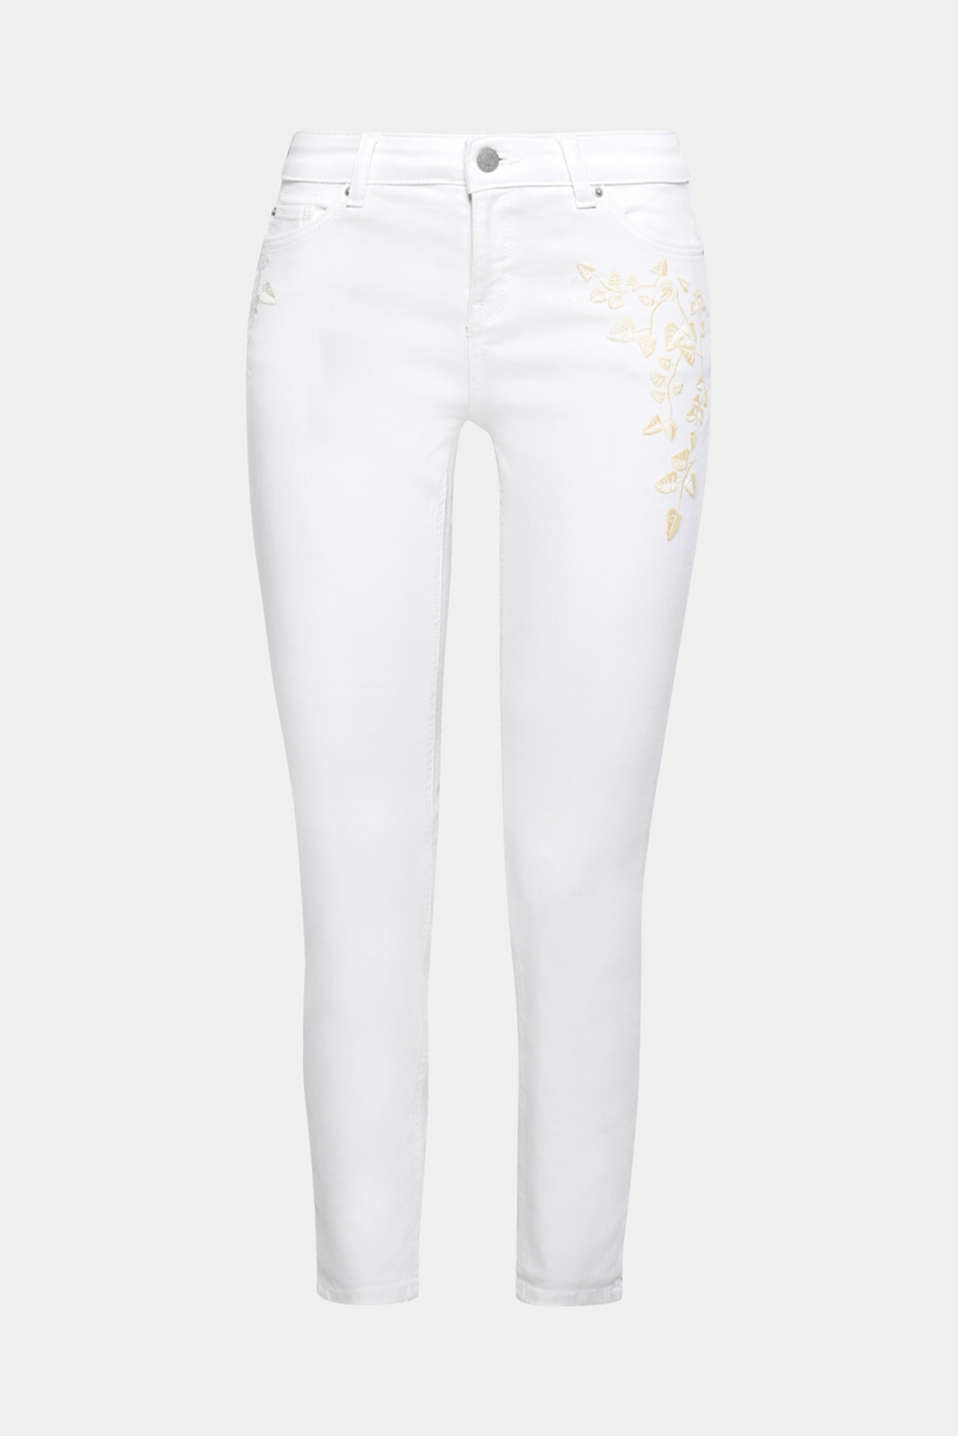 For a fresh summer look! These jeans are a finely decorated denim favourite thanks to the floral embroidery.